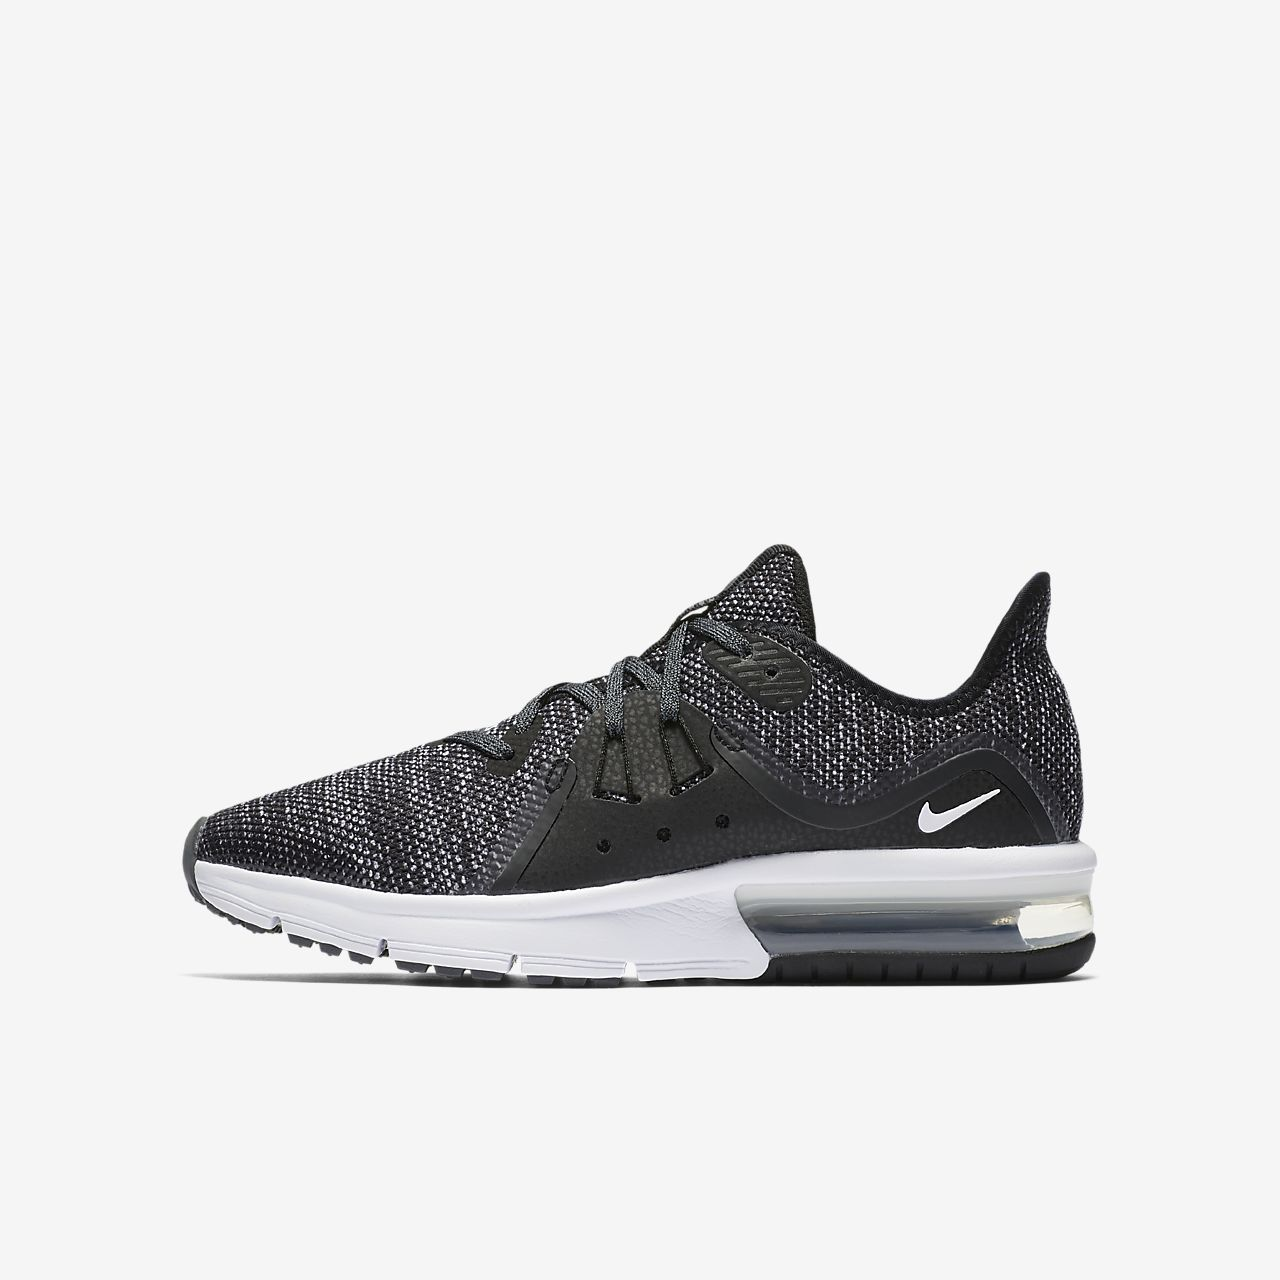 8787e48bcb Nike Air Max Sequent 3 Older Kids' Running Shoe. Nike.com CZ